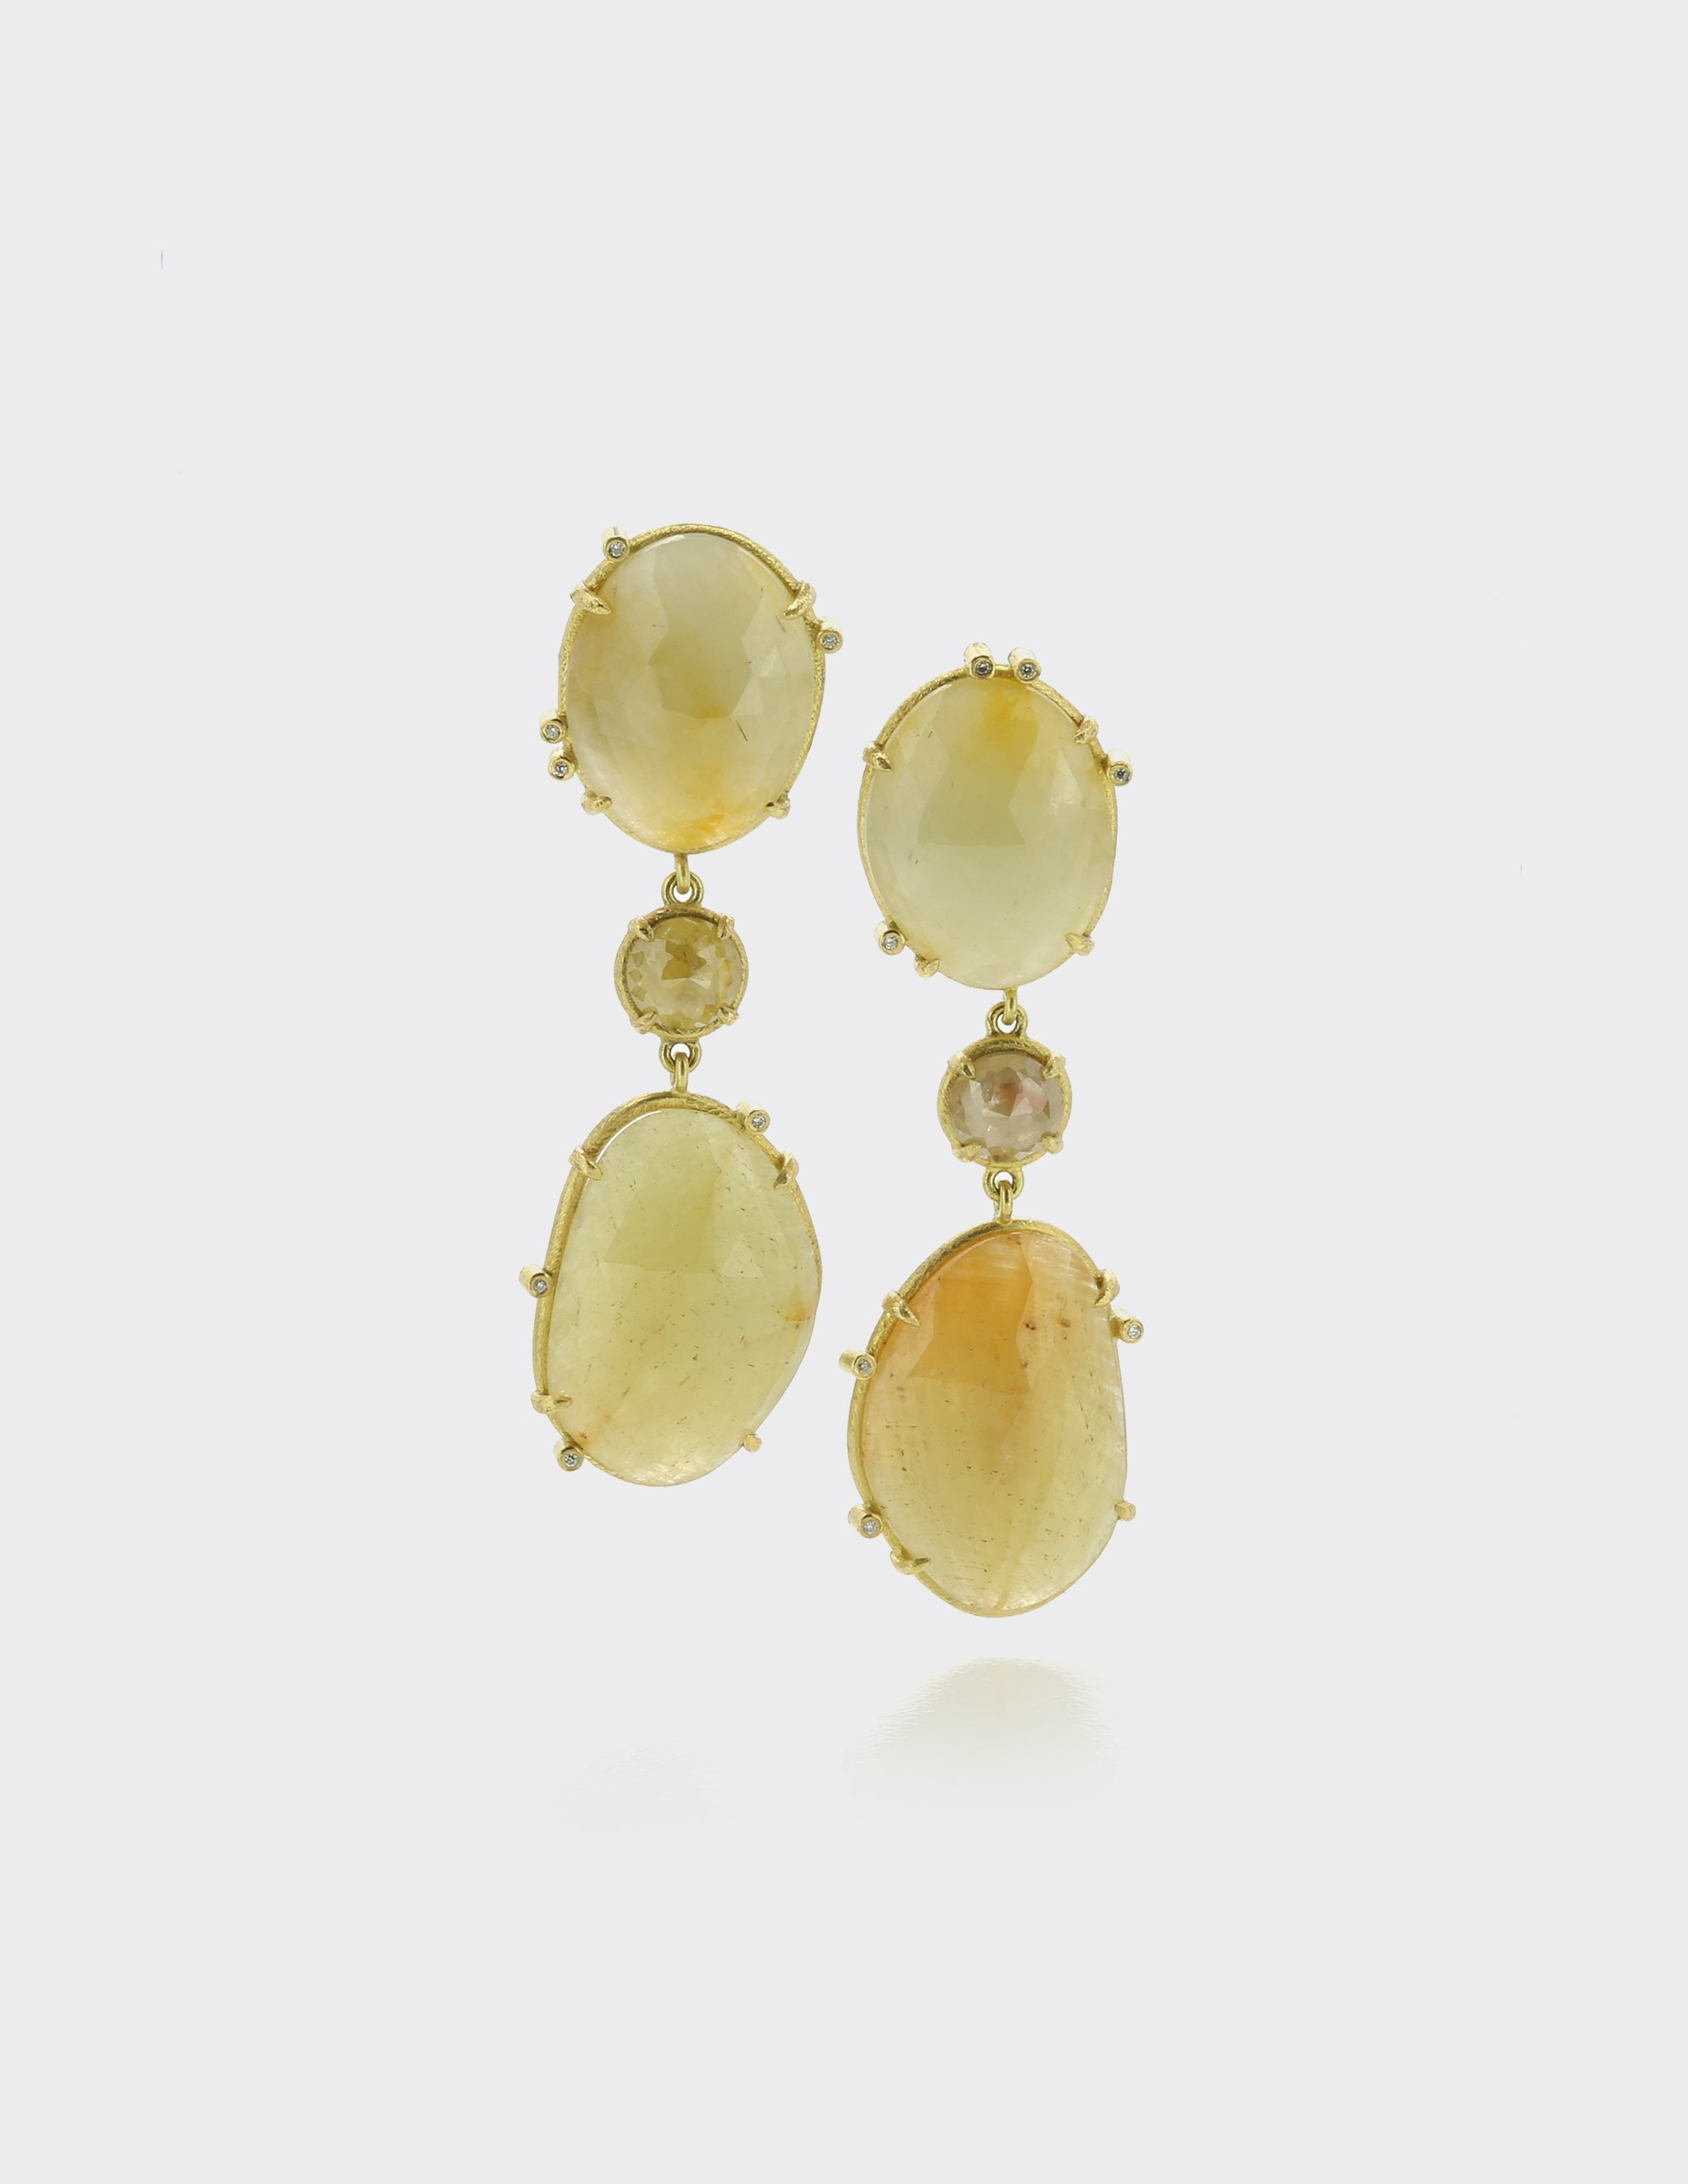 Yellow sapphire and diamond earrings